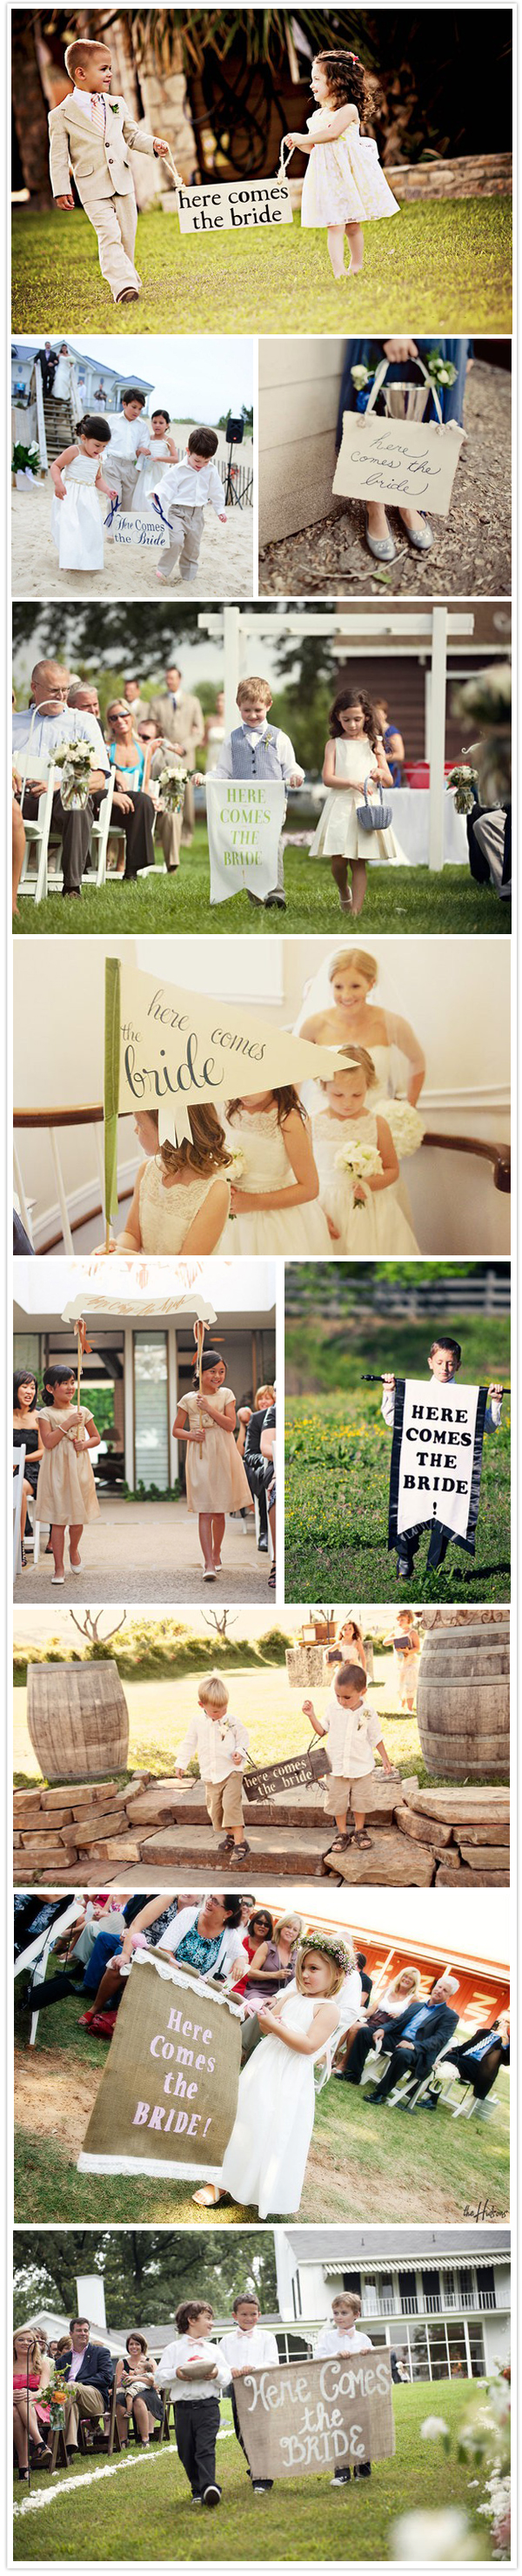 Here comes the bride wedding signs